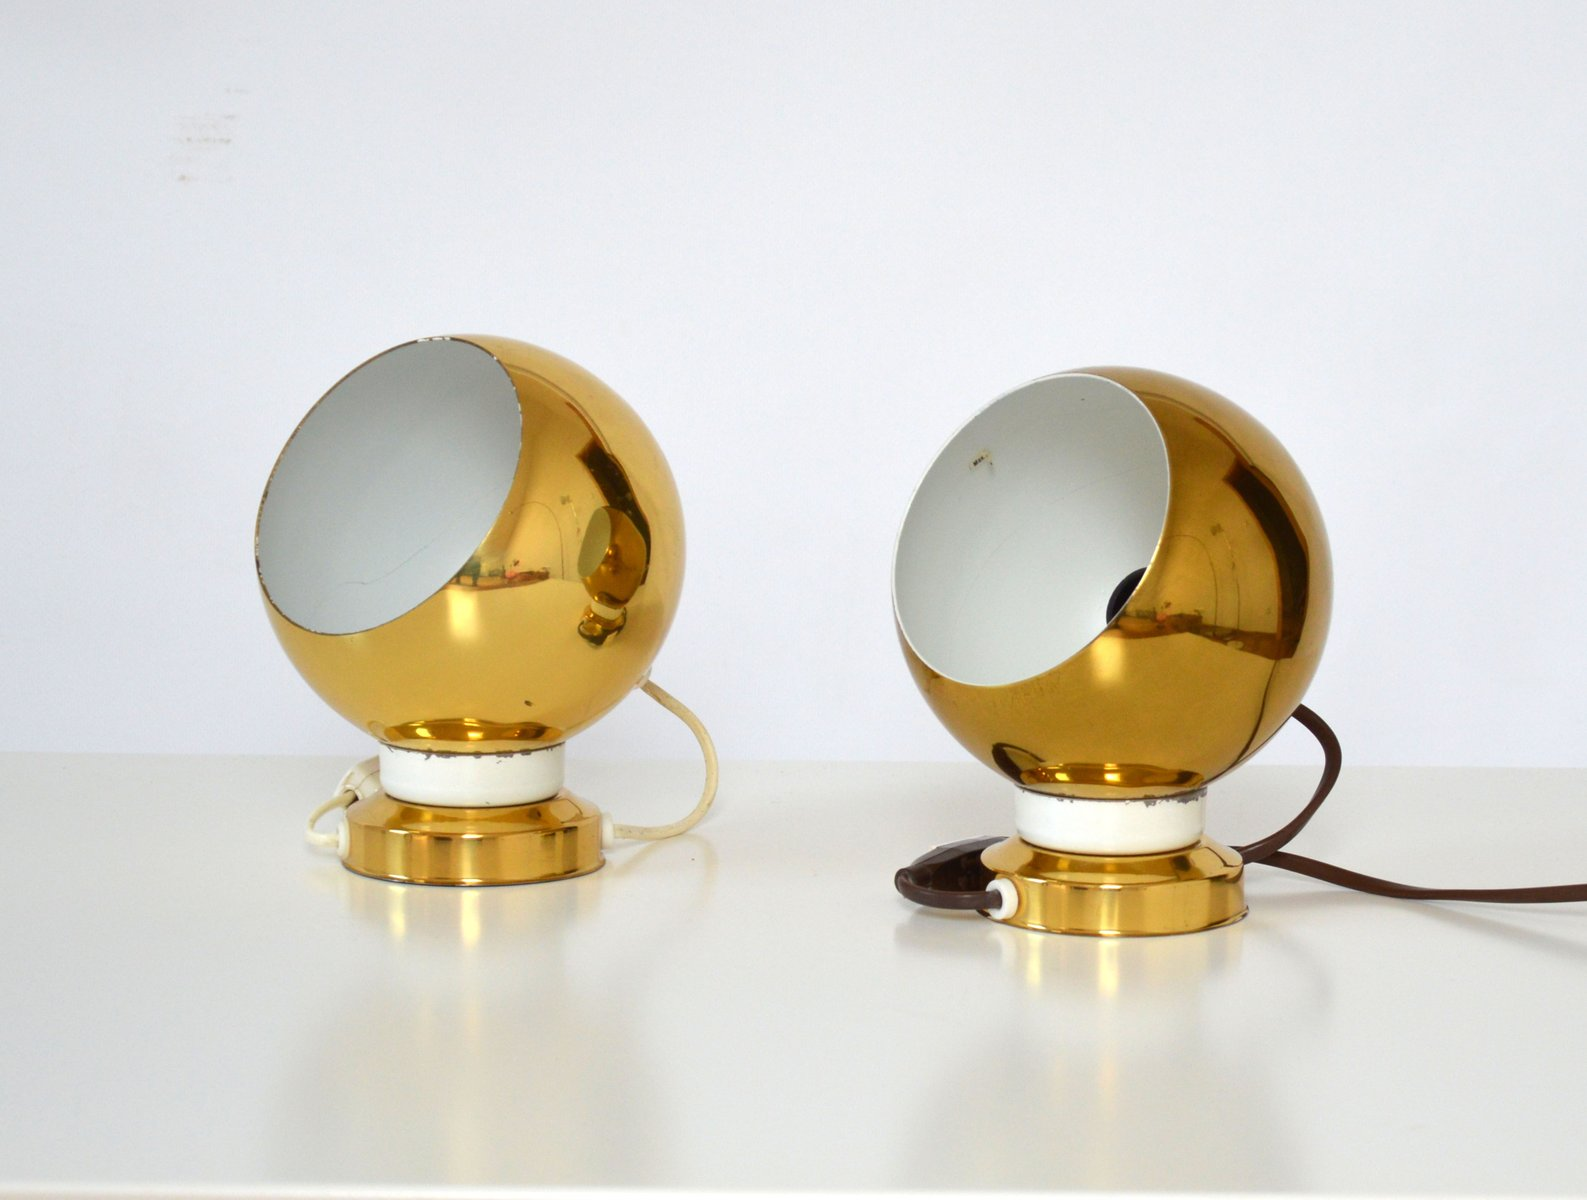 Swedish Golden-Colored Wall Lamps, 1970s, Set of 2 for sale at Pamono